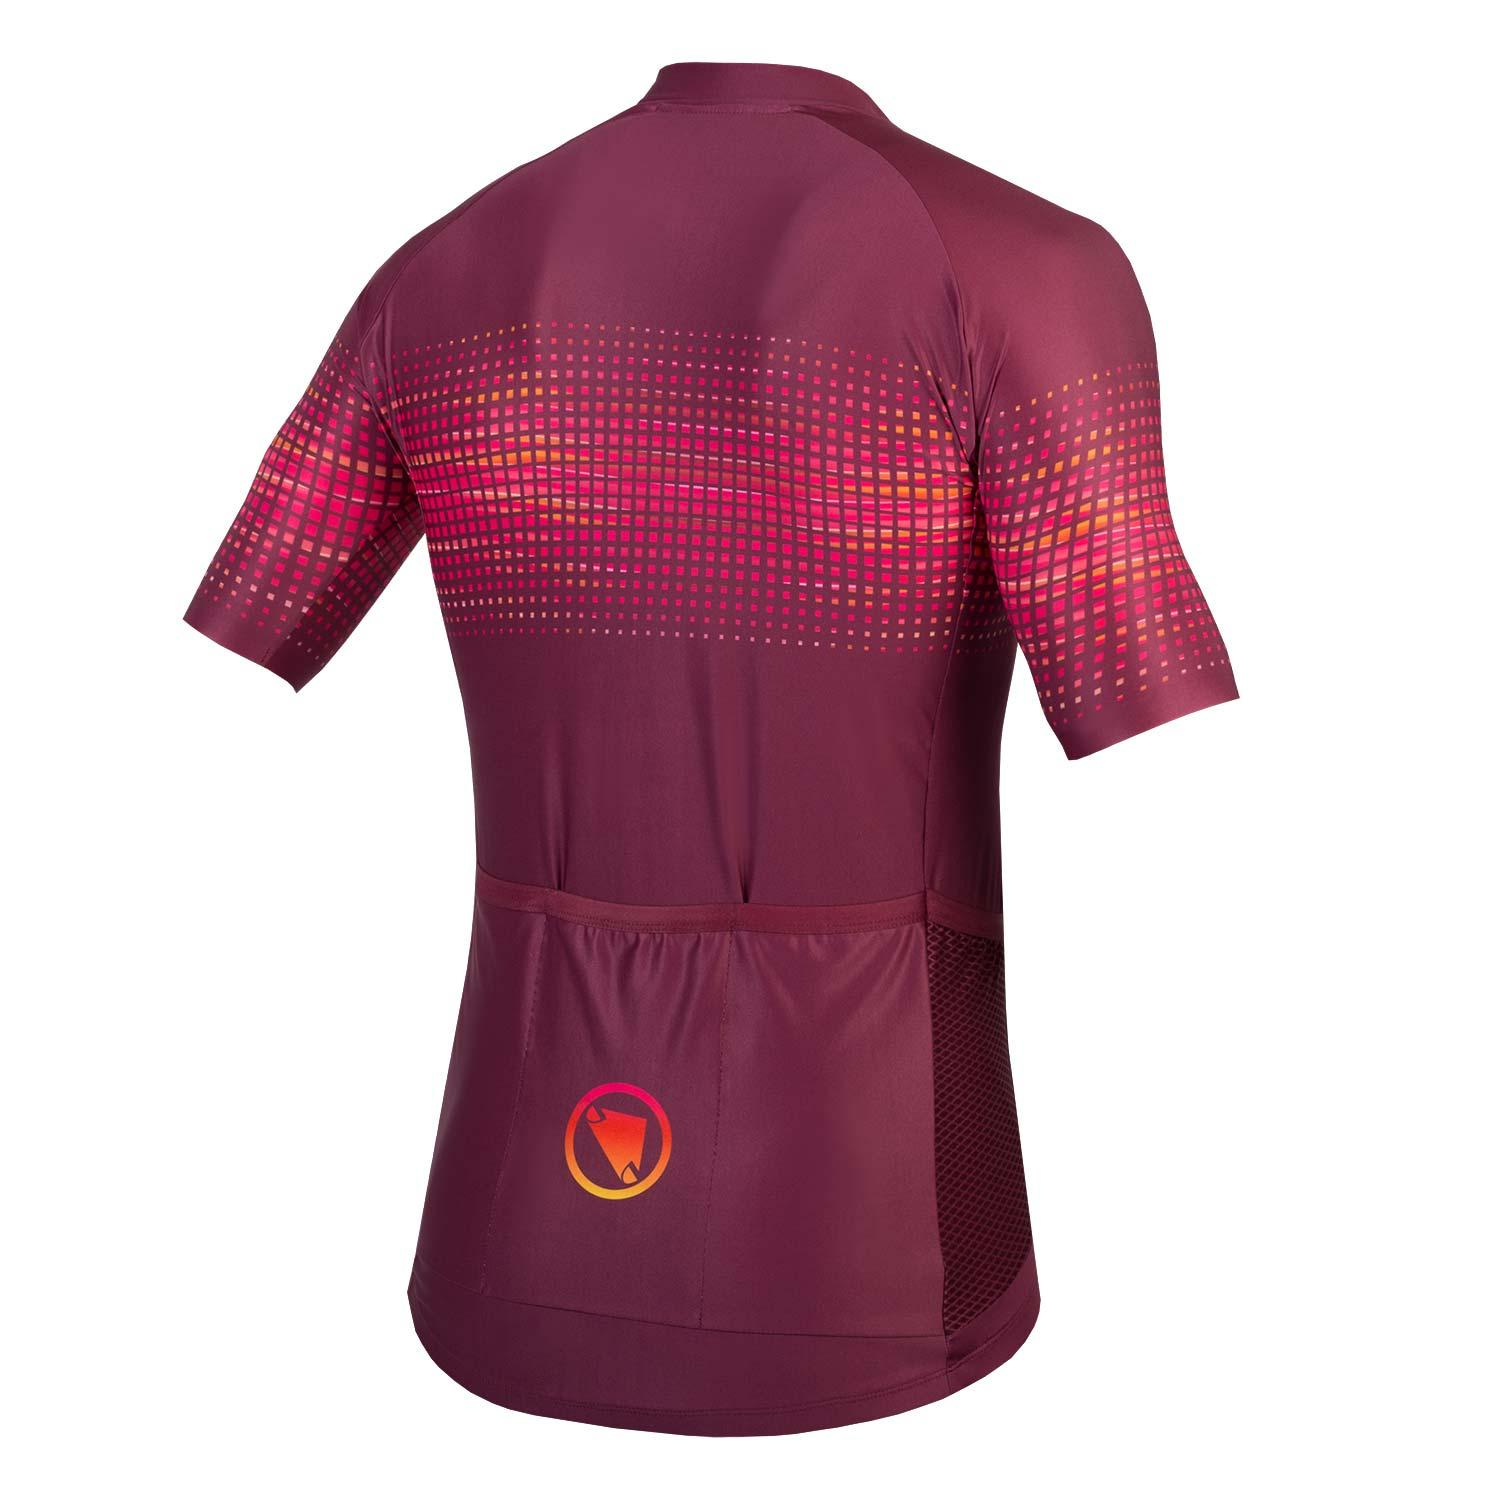 Endura Fietsshirt korte mouwen Heren Bordeaux / PT Wave S/S Shirt LTD - Mulberry